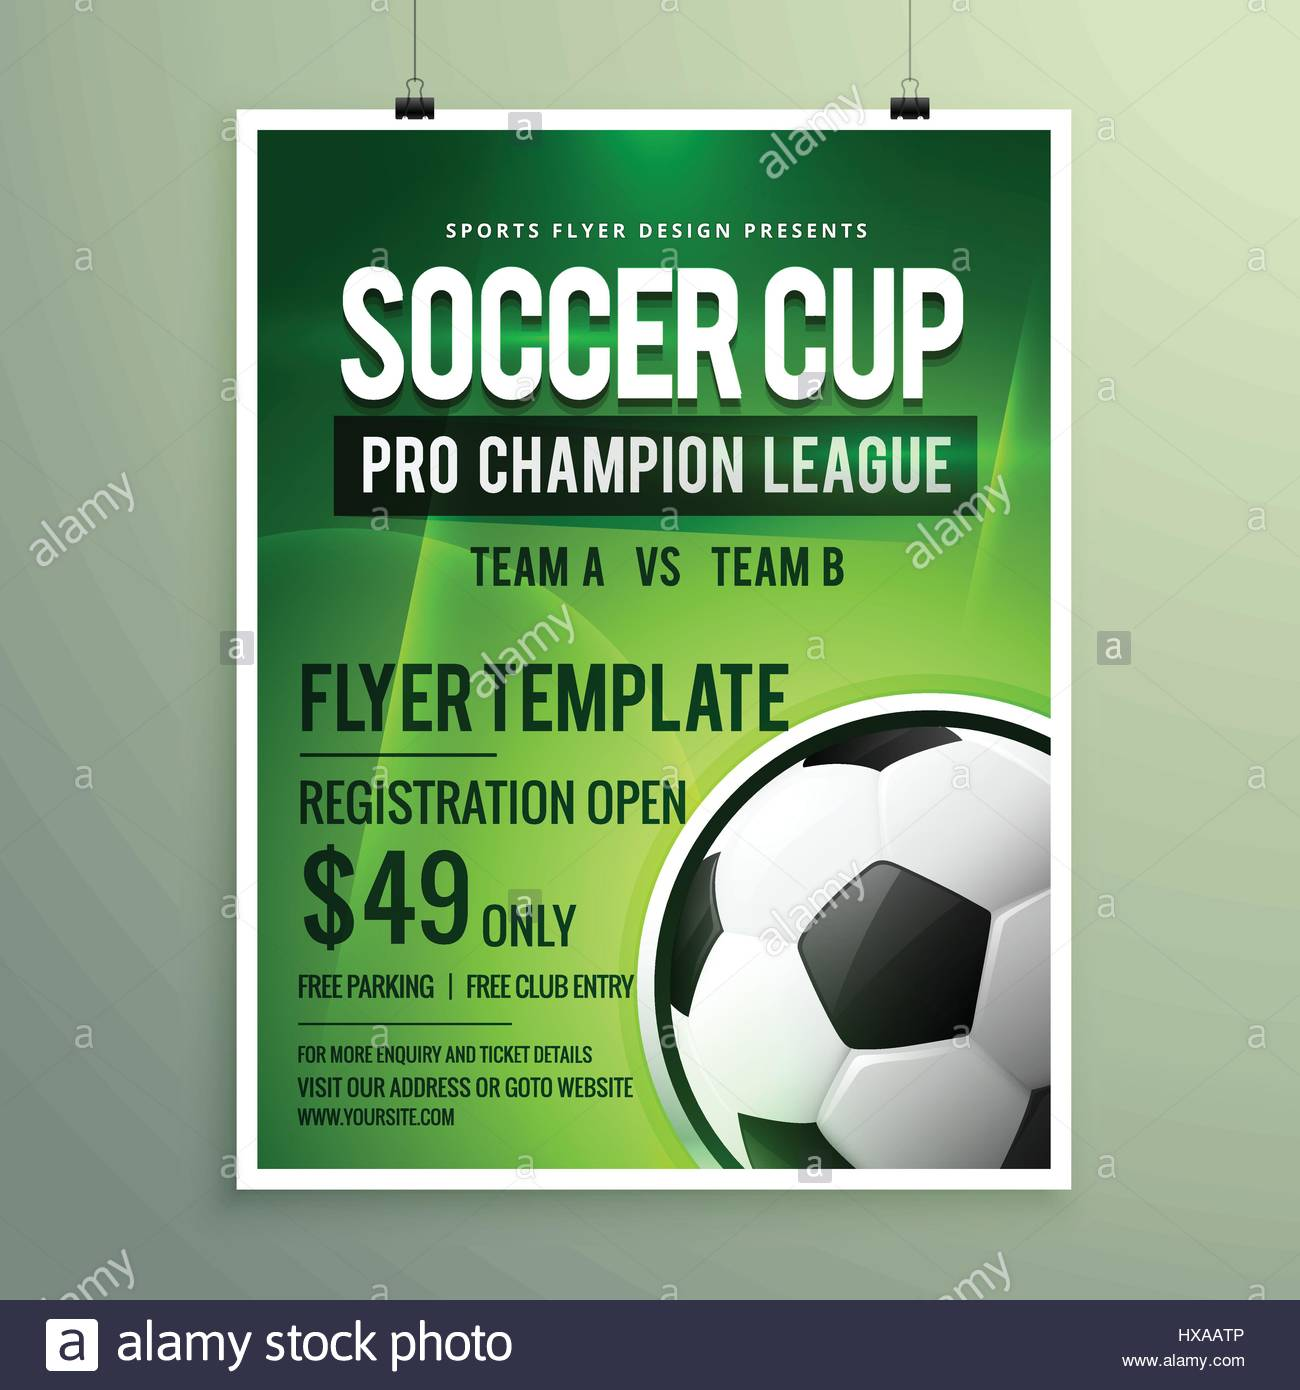 soccer league sports event flyer design stock vector art